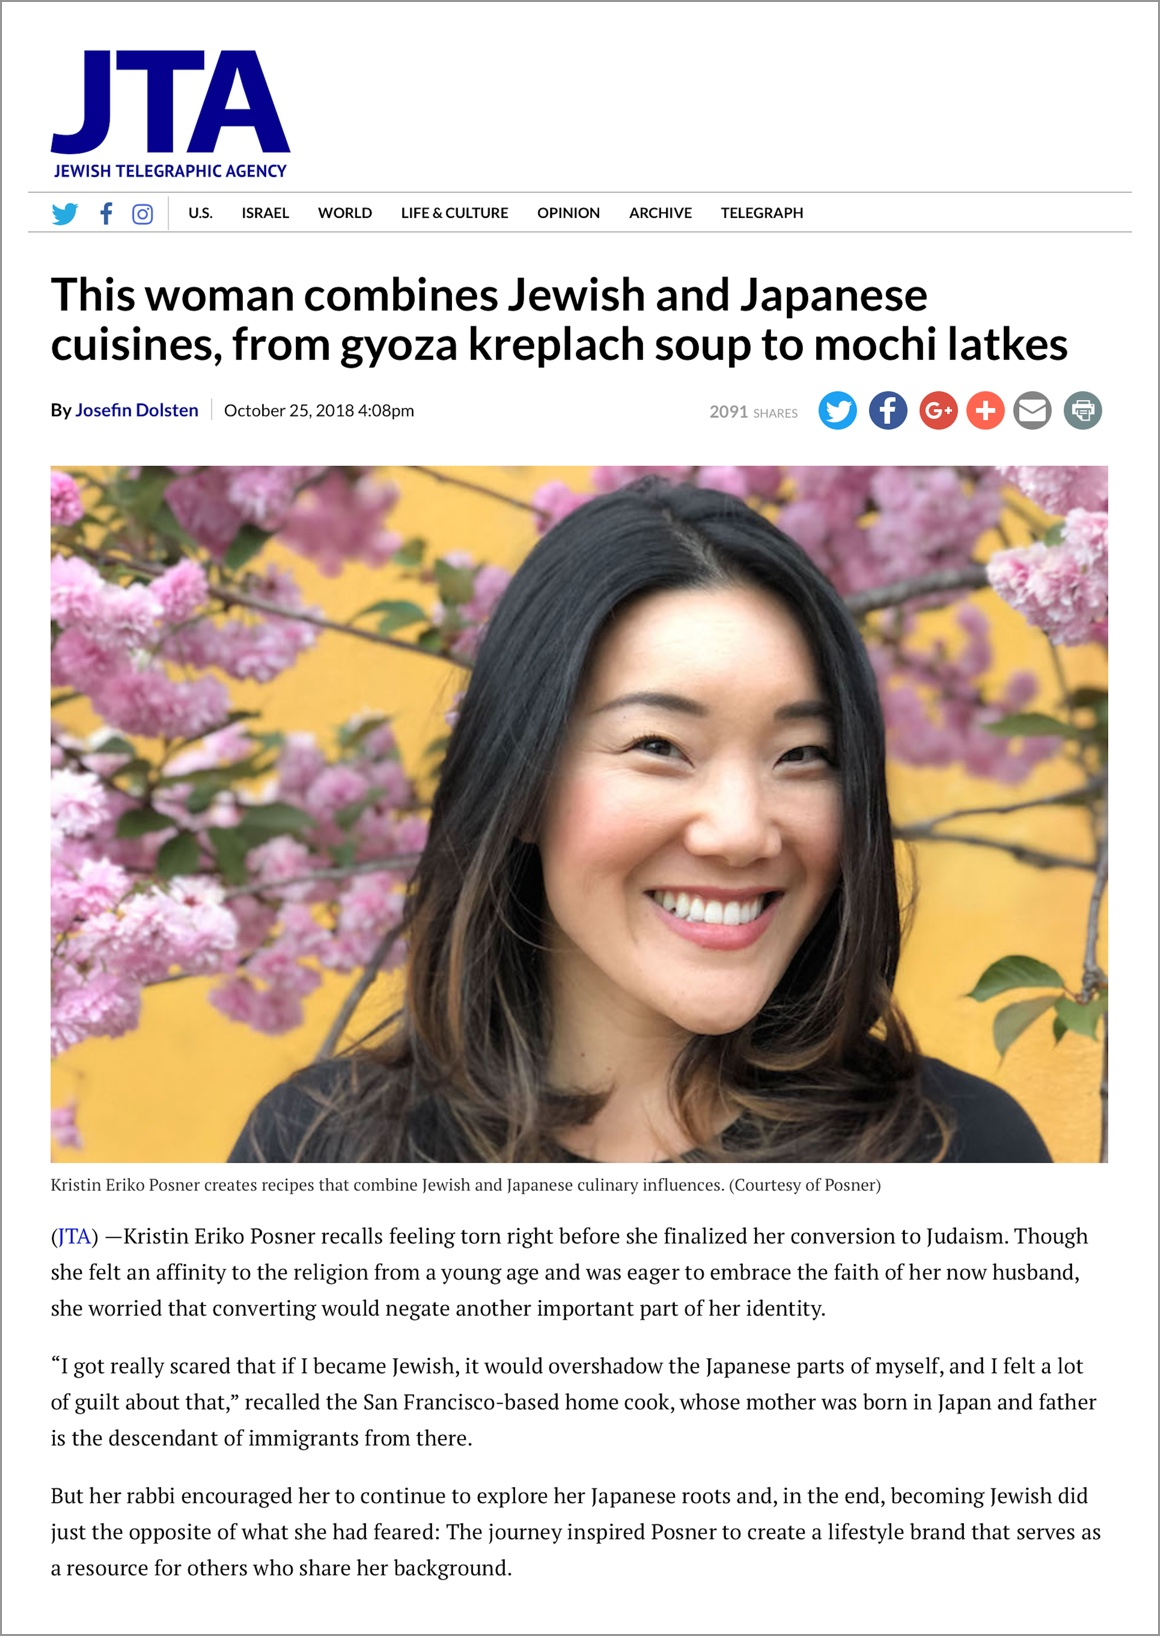 """""""Kristin Eriko Posner recalls feeling torn right before she finalized her conversion to Judaism. Though she felt an affinity to the religion from a young age and was eager to embrace the faith of her now husband, she worried that converting would negate another important part of her identity..."""